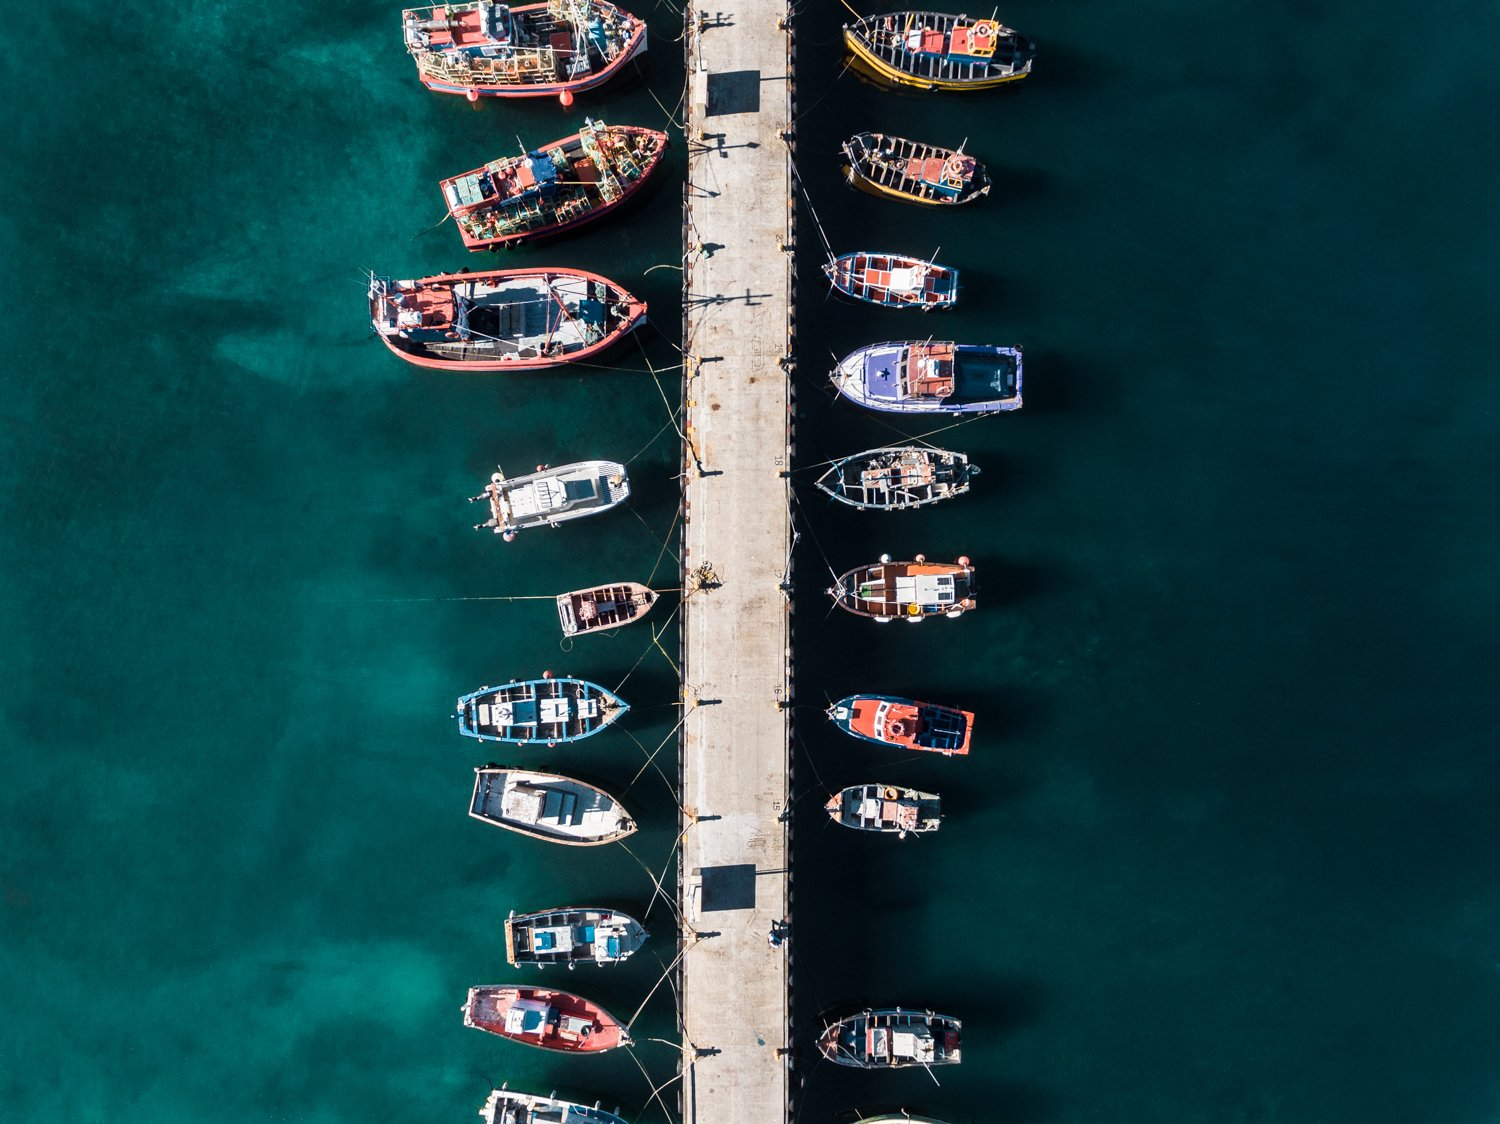 Aerial of boats docked at Kalk Bay harbour